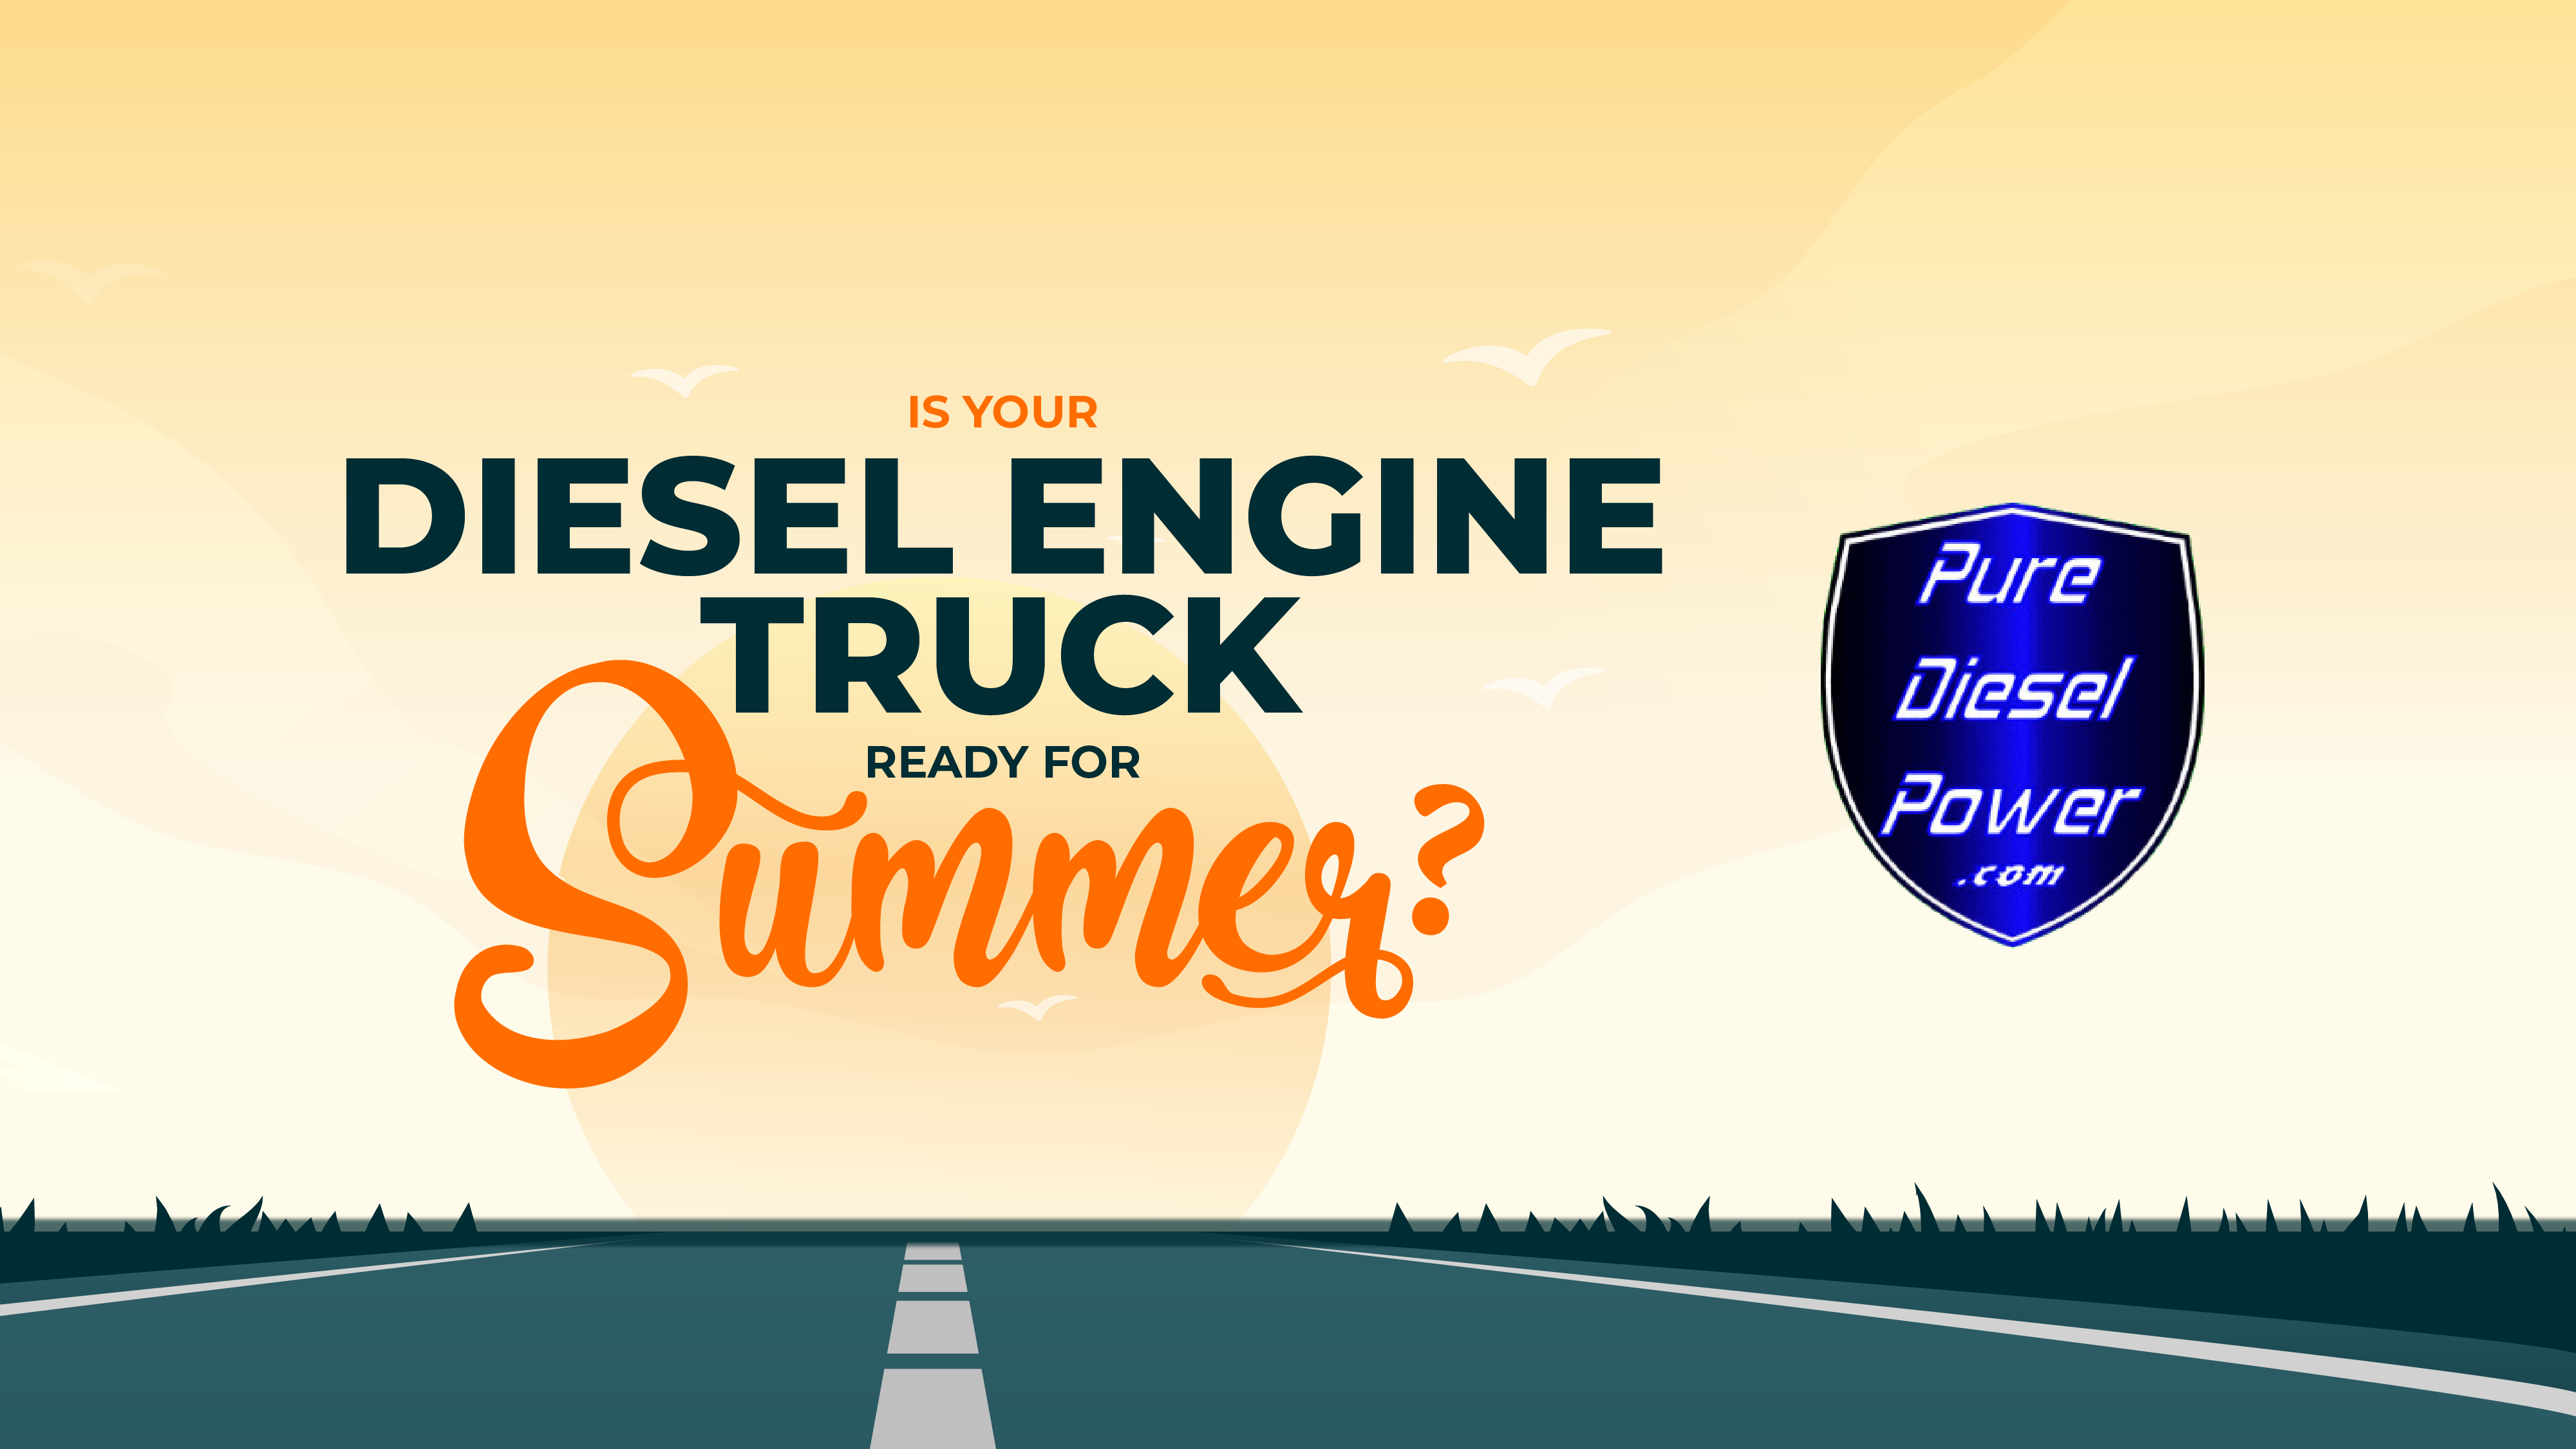 is-your-diesel-engine-truck-ready-for-summer-feastured-image